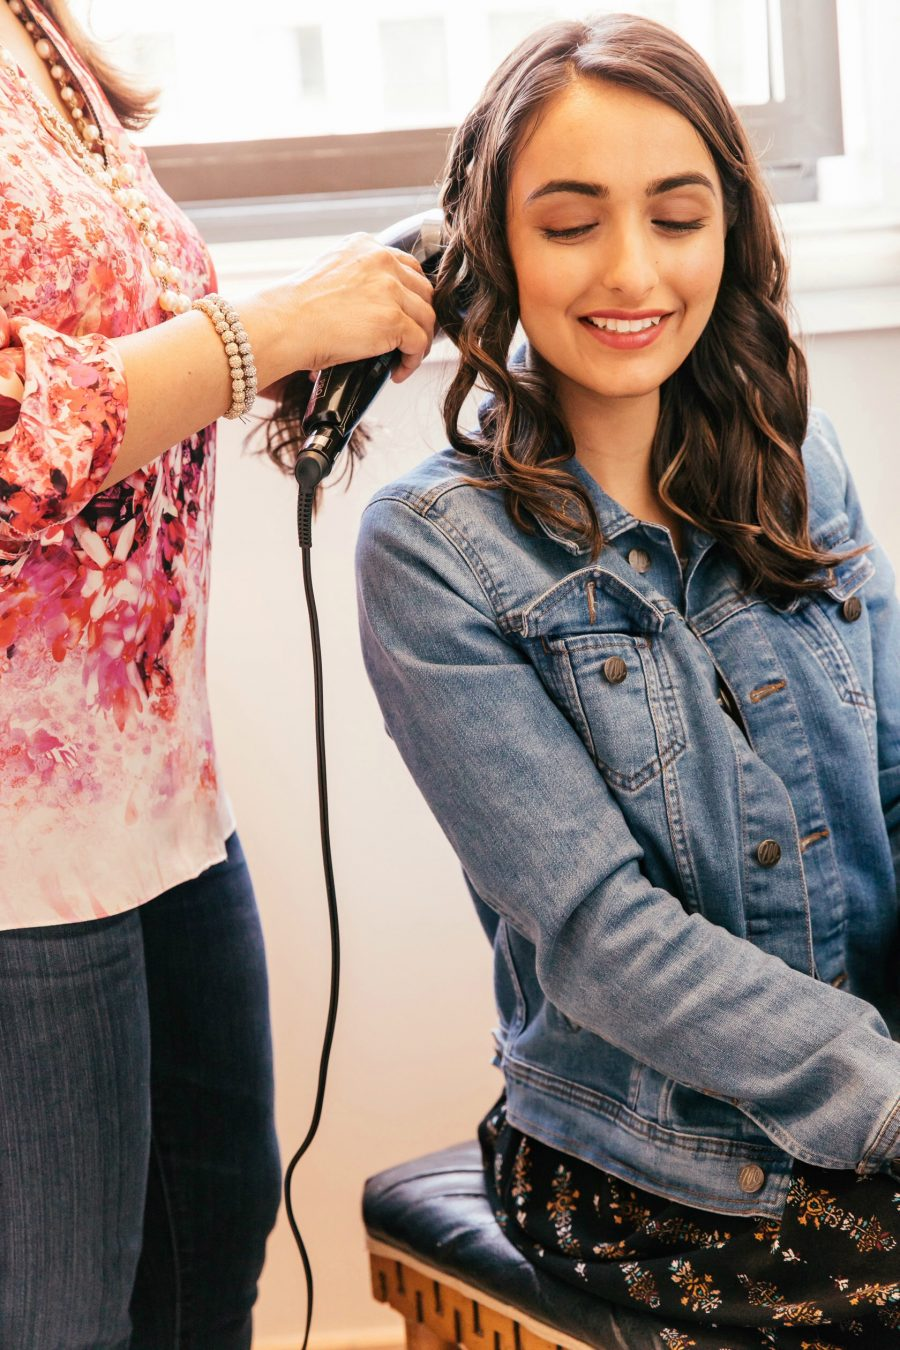 LA-based beauty blogger Nita Mann from Next With Nita shares pros and cons about the new Conair Secret 2.0 Curler and has a giveaway for Mother's Day!